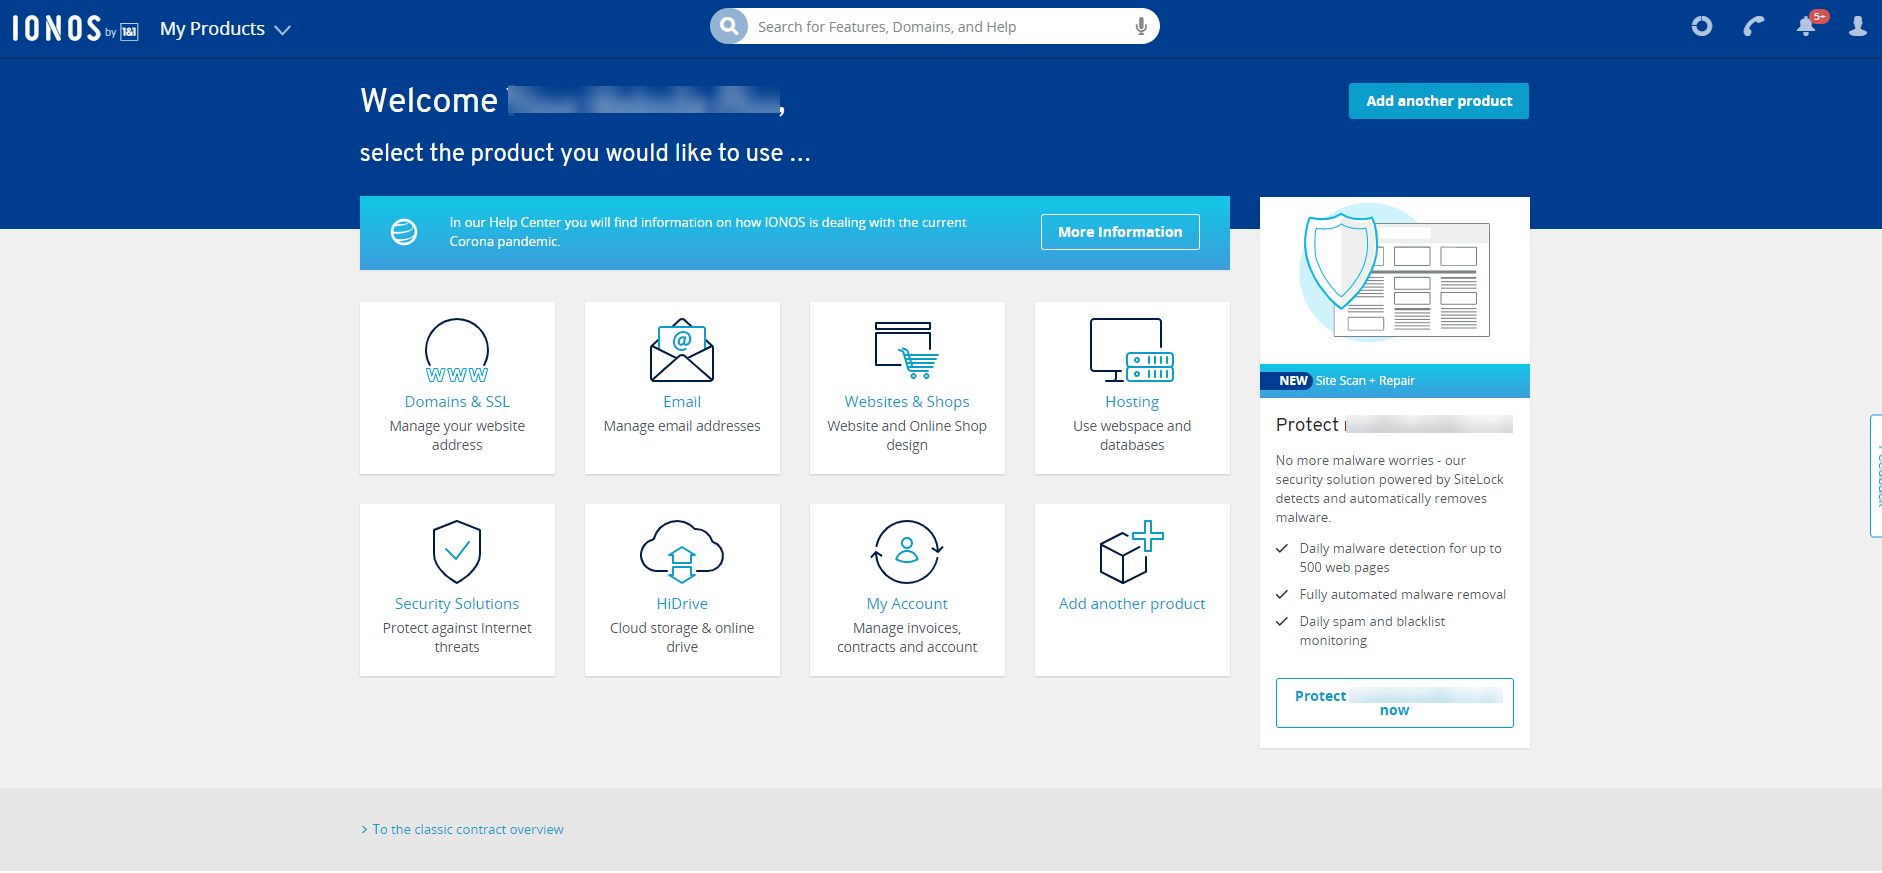 1and1 IONOS control panel home page